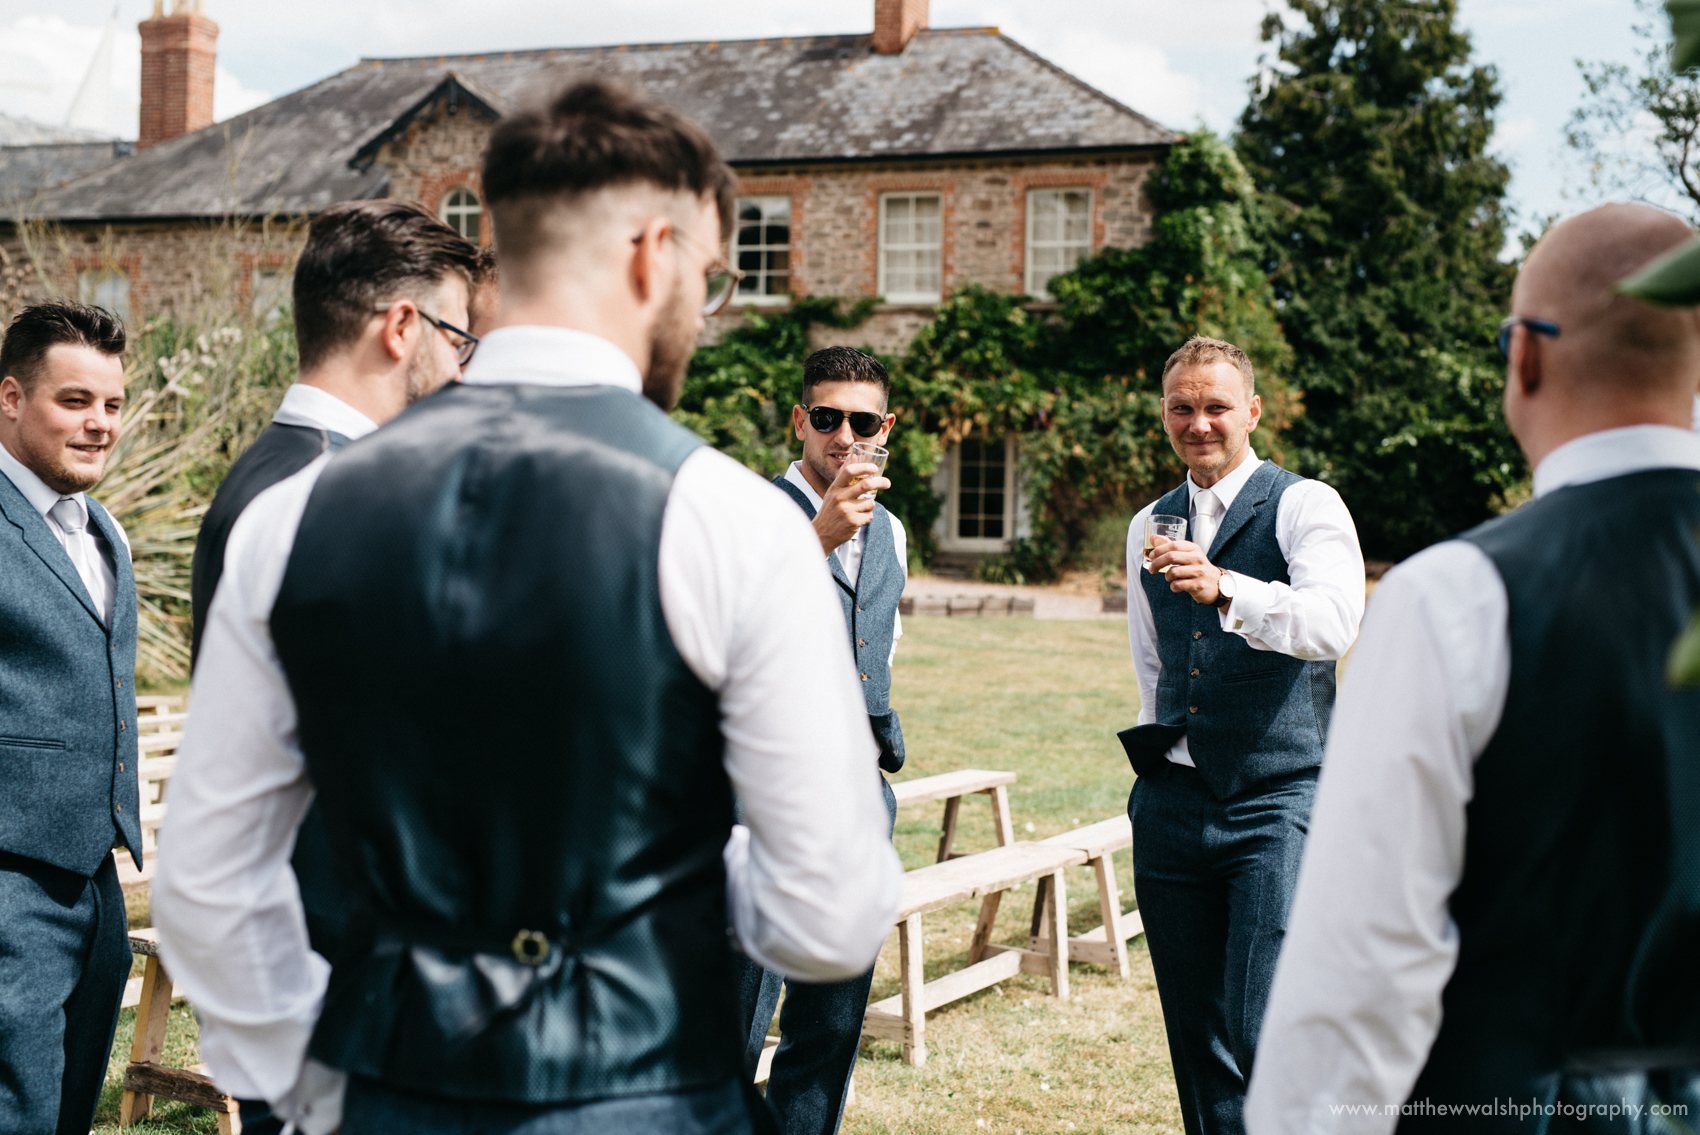 Groomsmen having a little pre ceremony banter with the groom